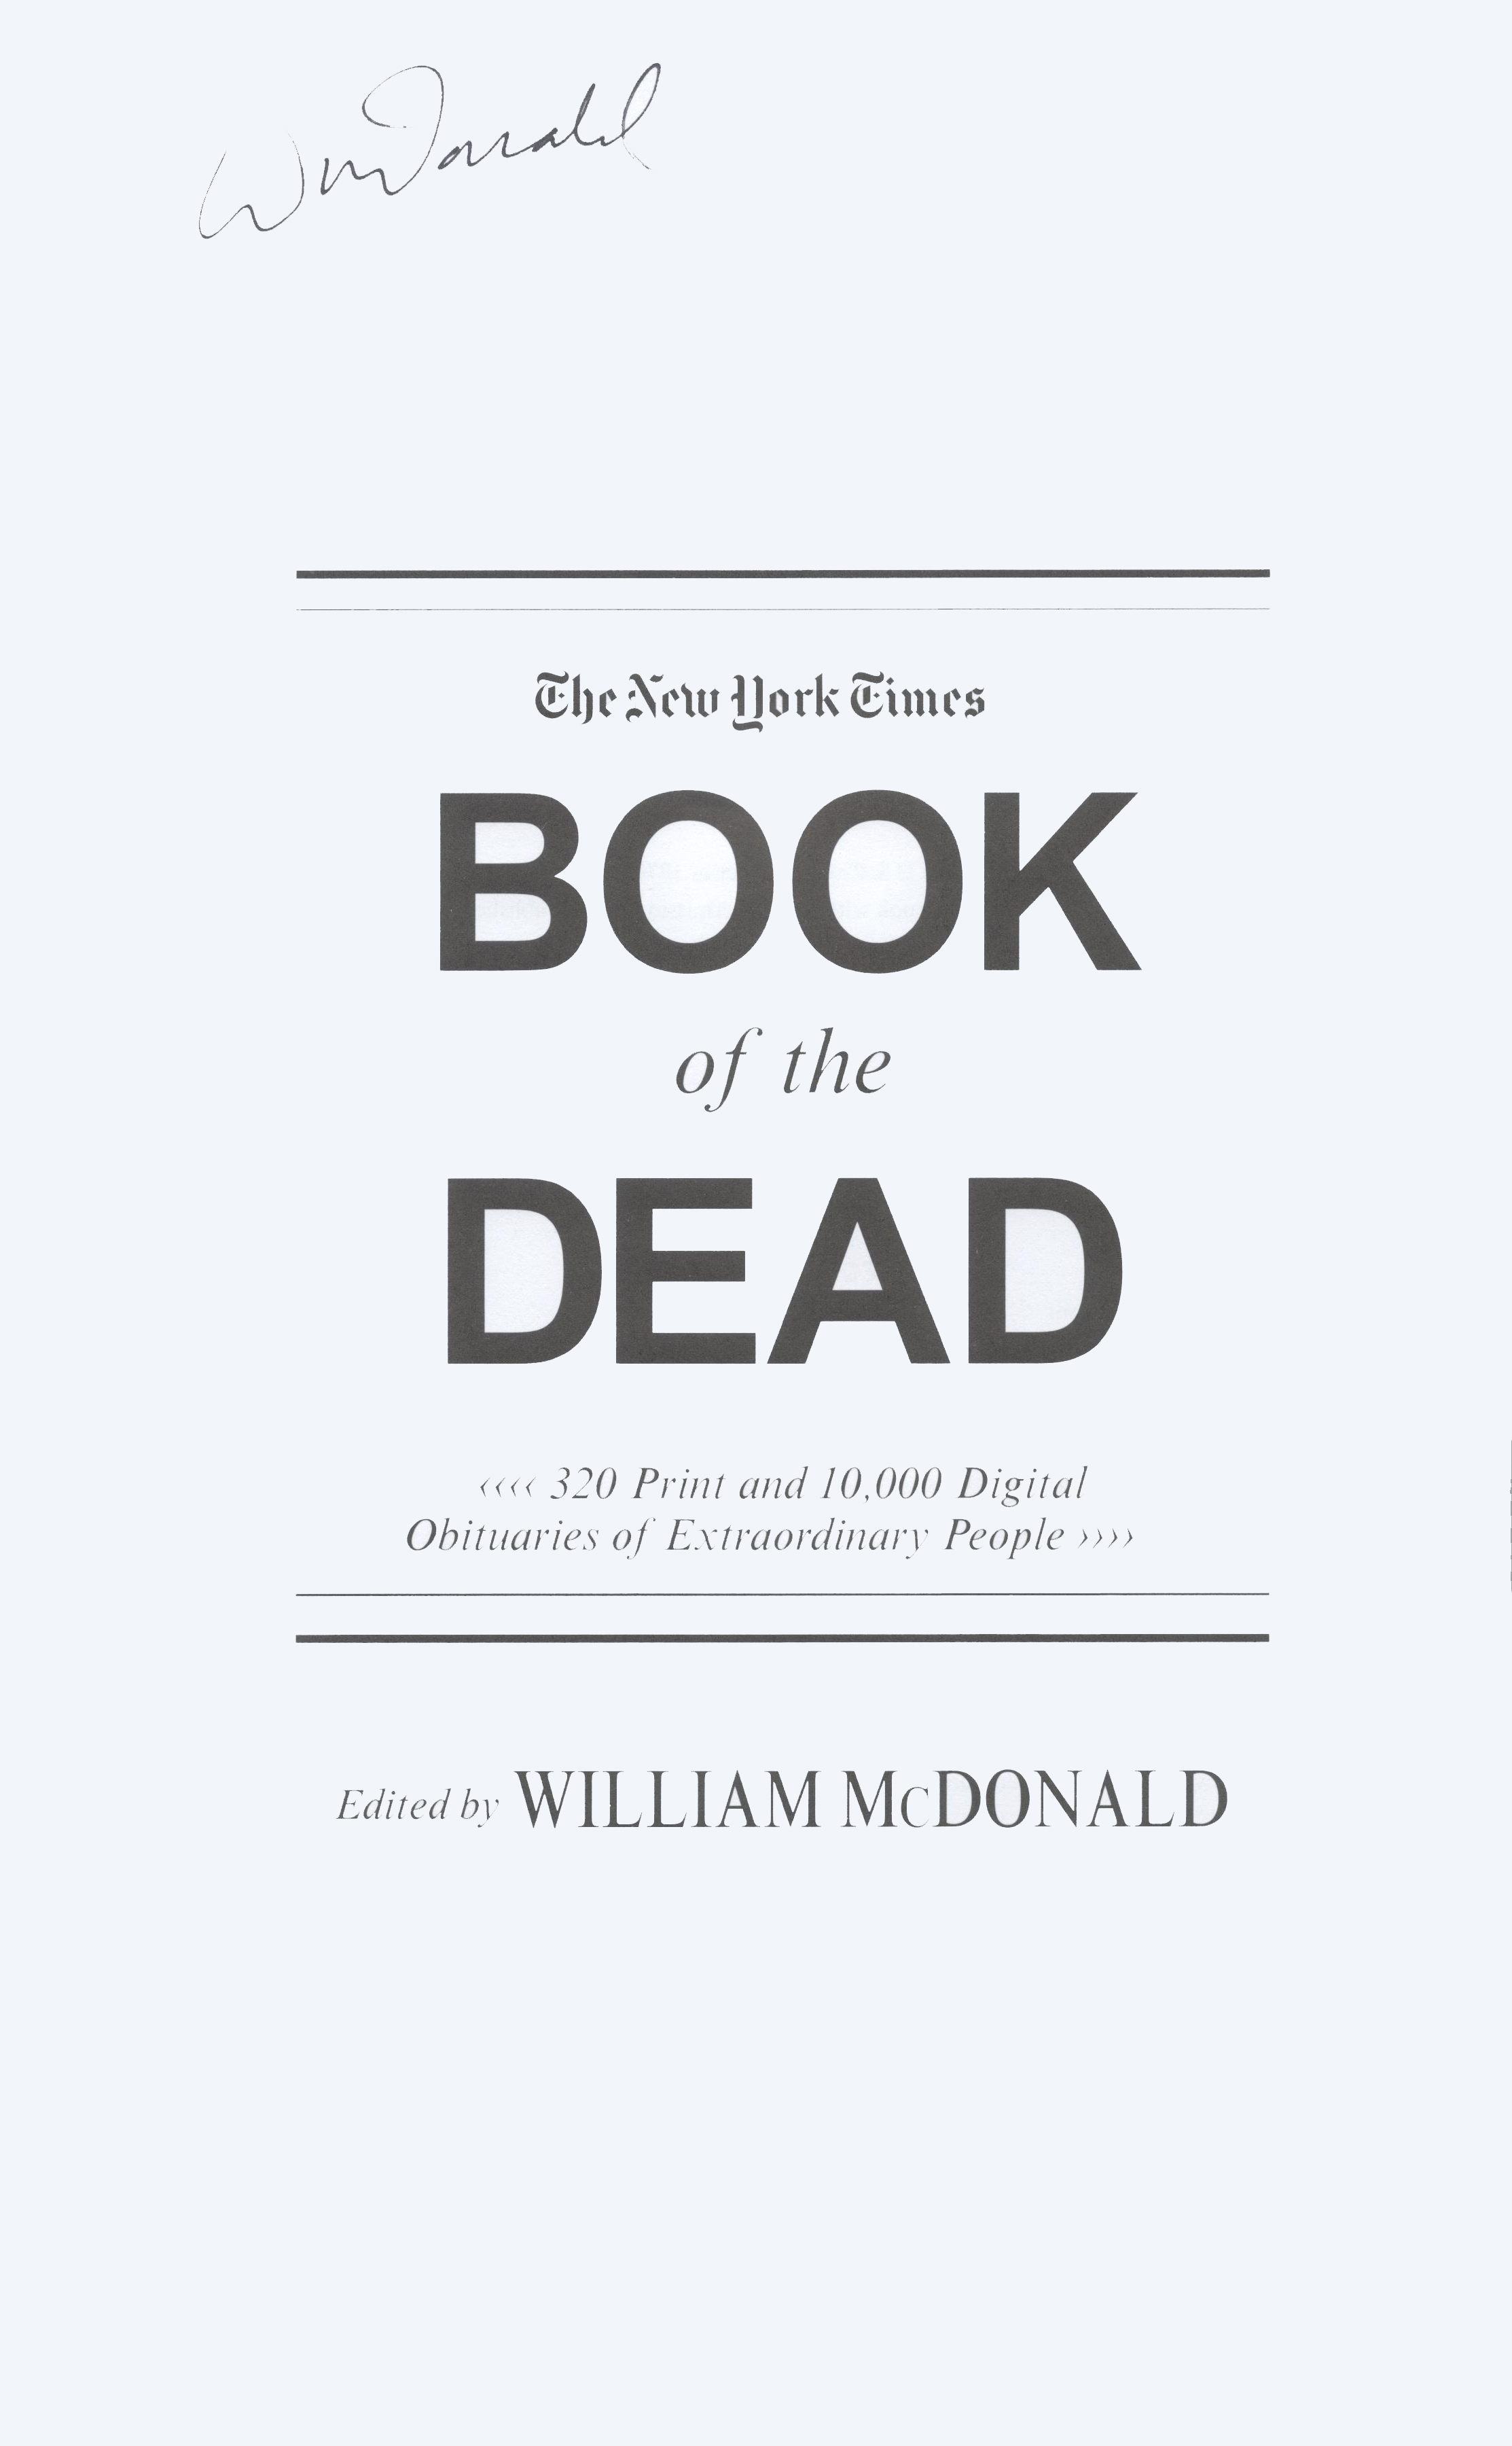 book of the dead new york times